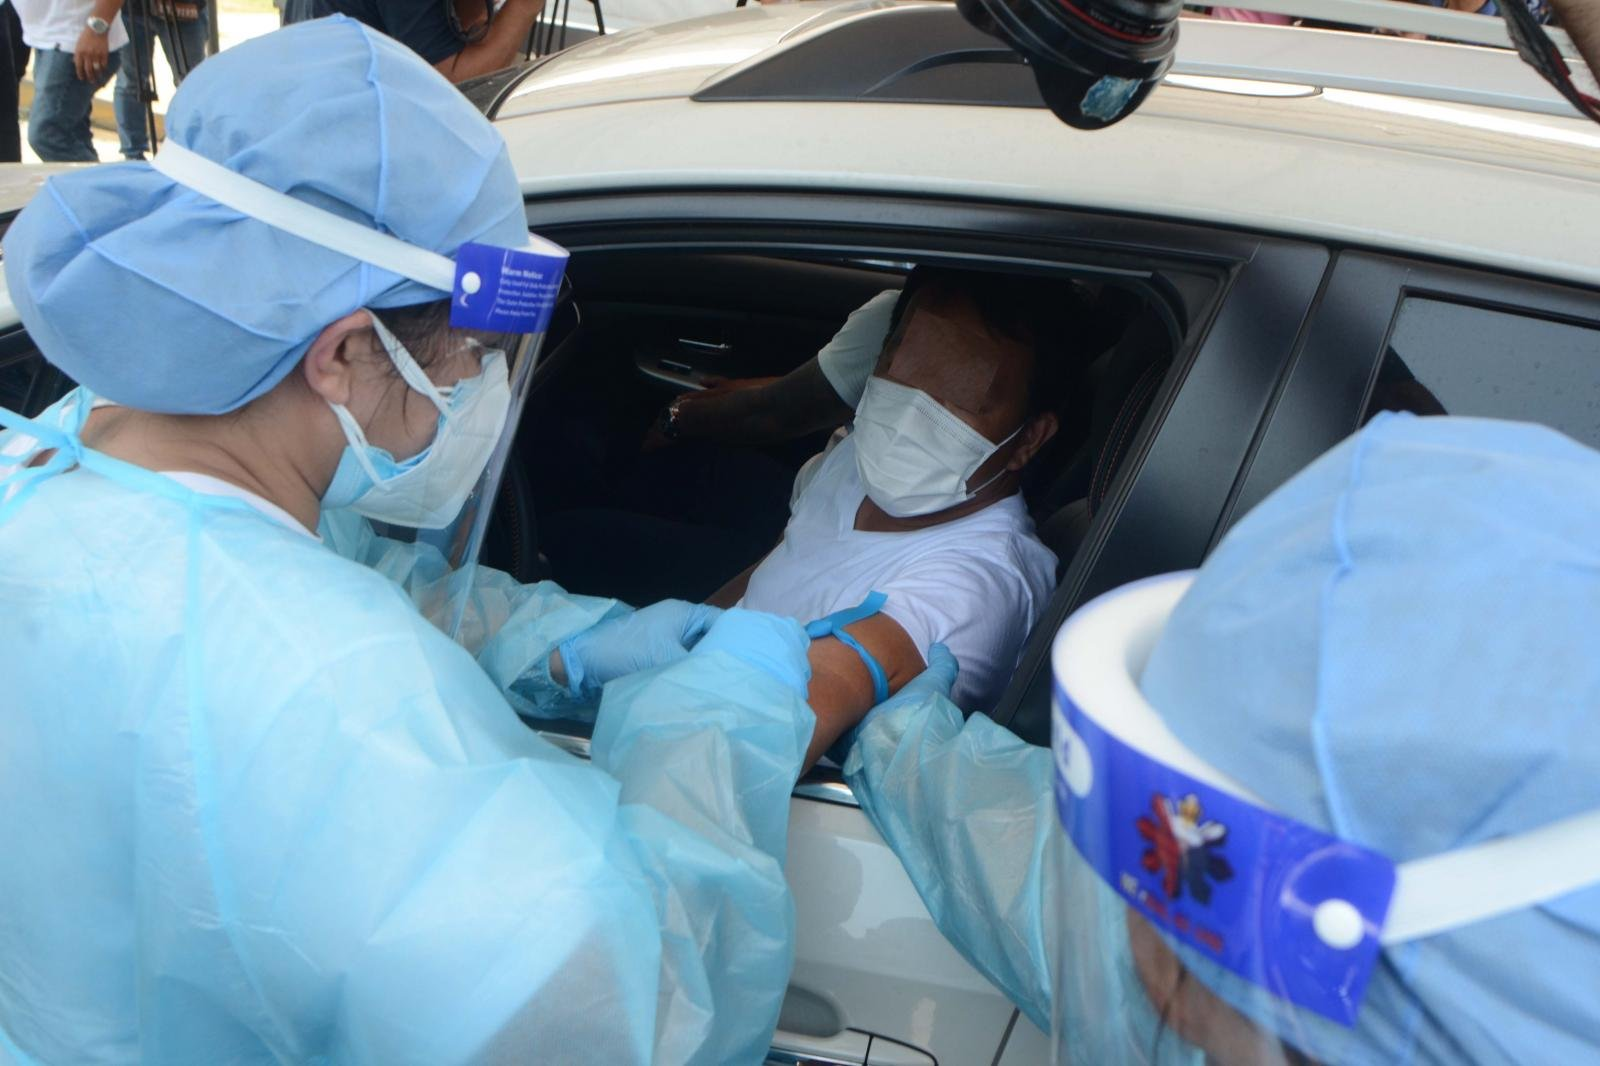 Medical personnel taking sample from patient